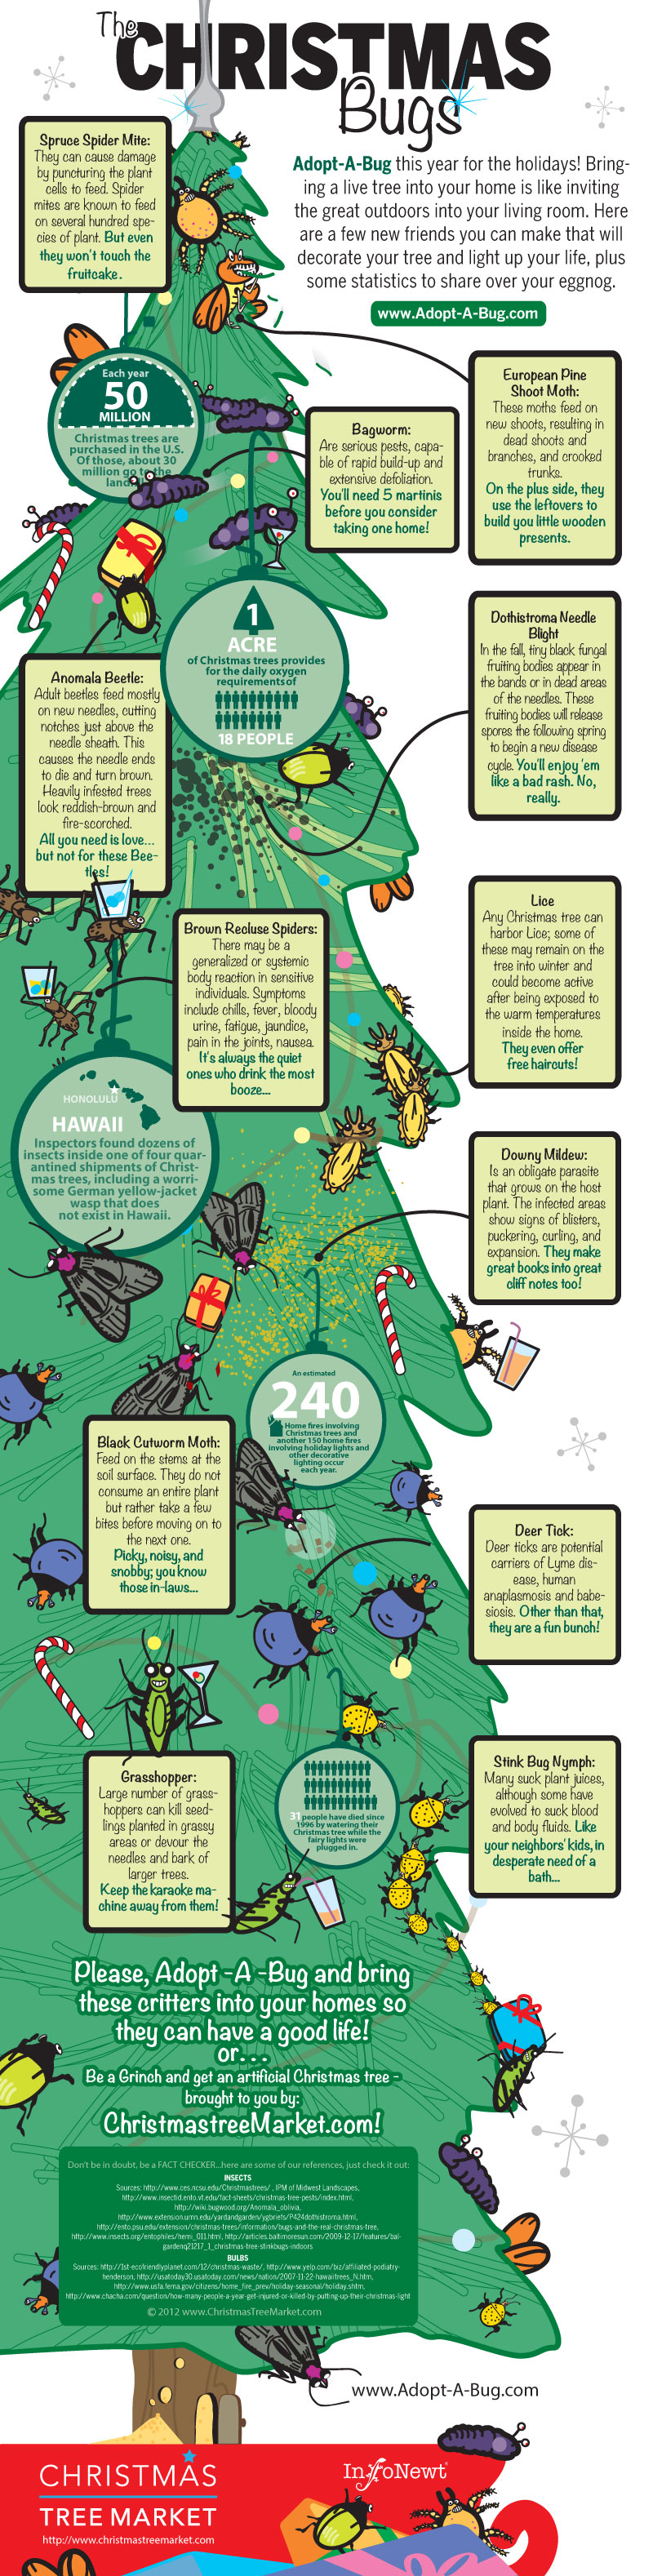 CTM Tree Bugs Infographic DRAFT E 800px.jpg